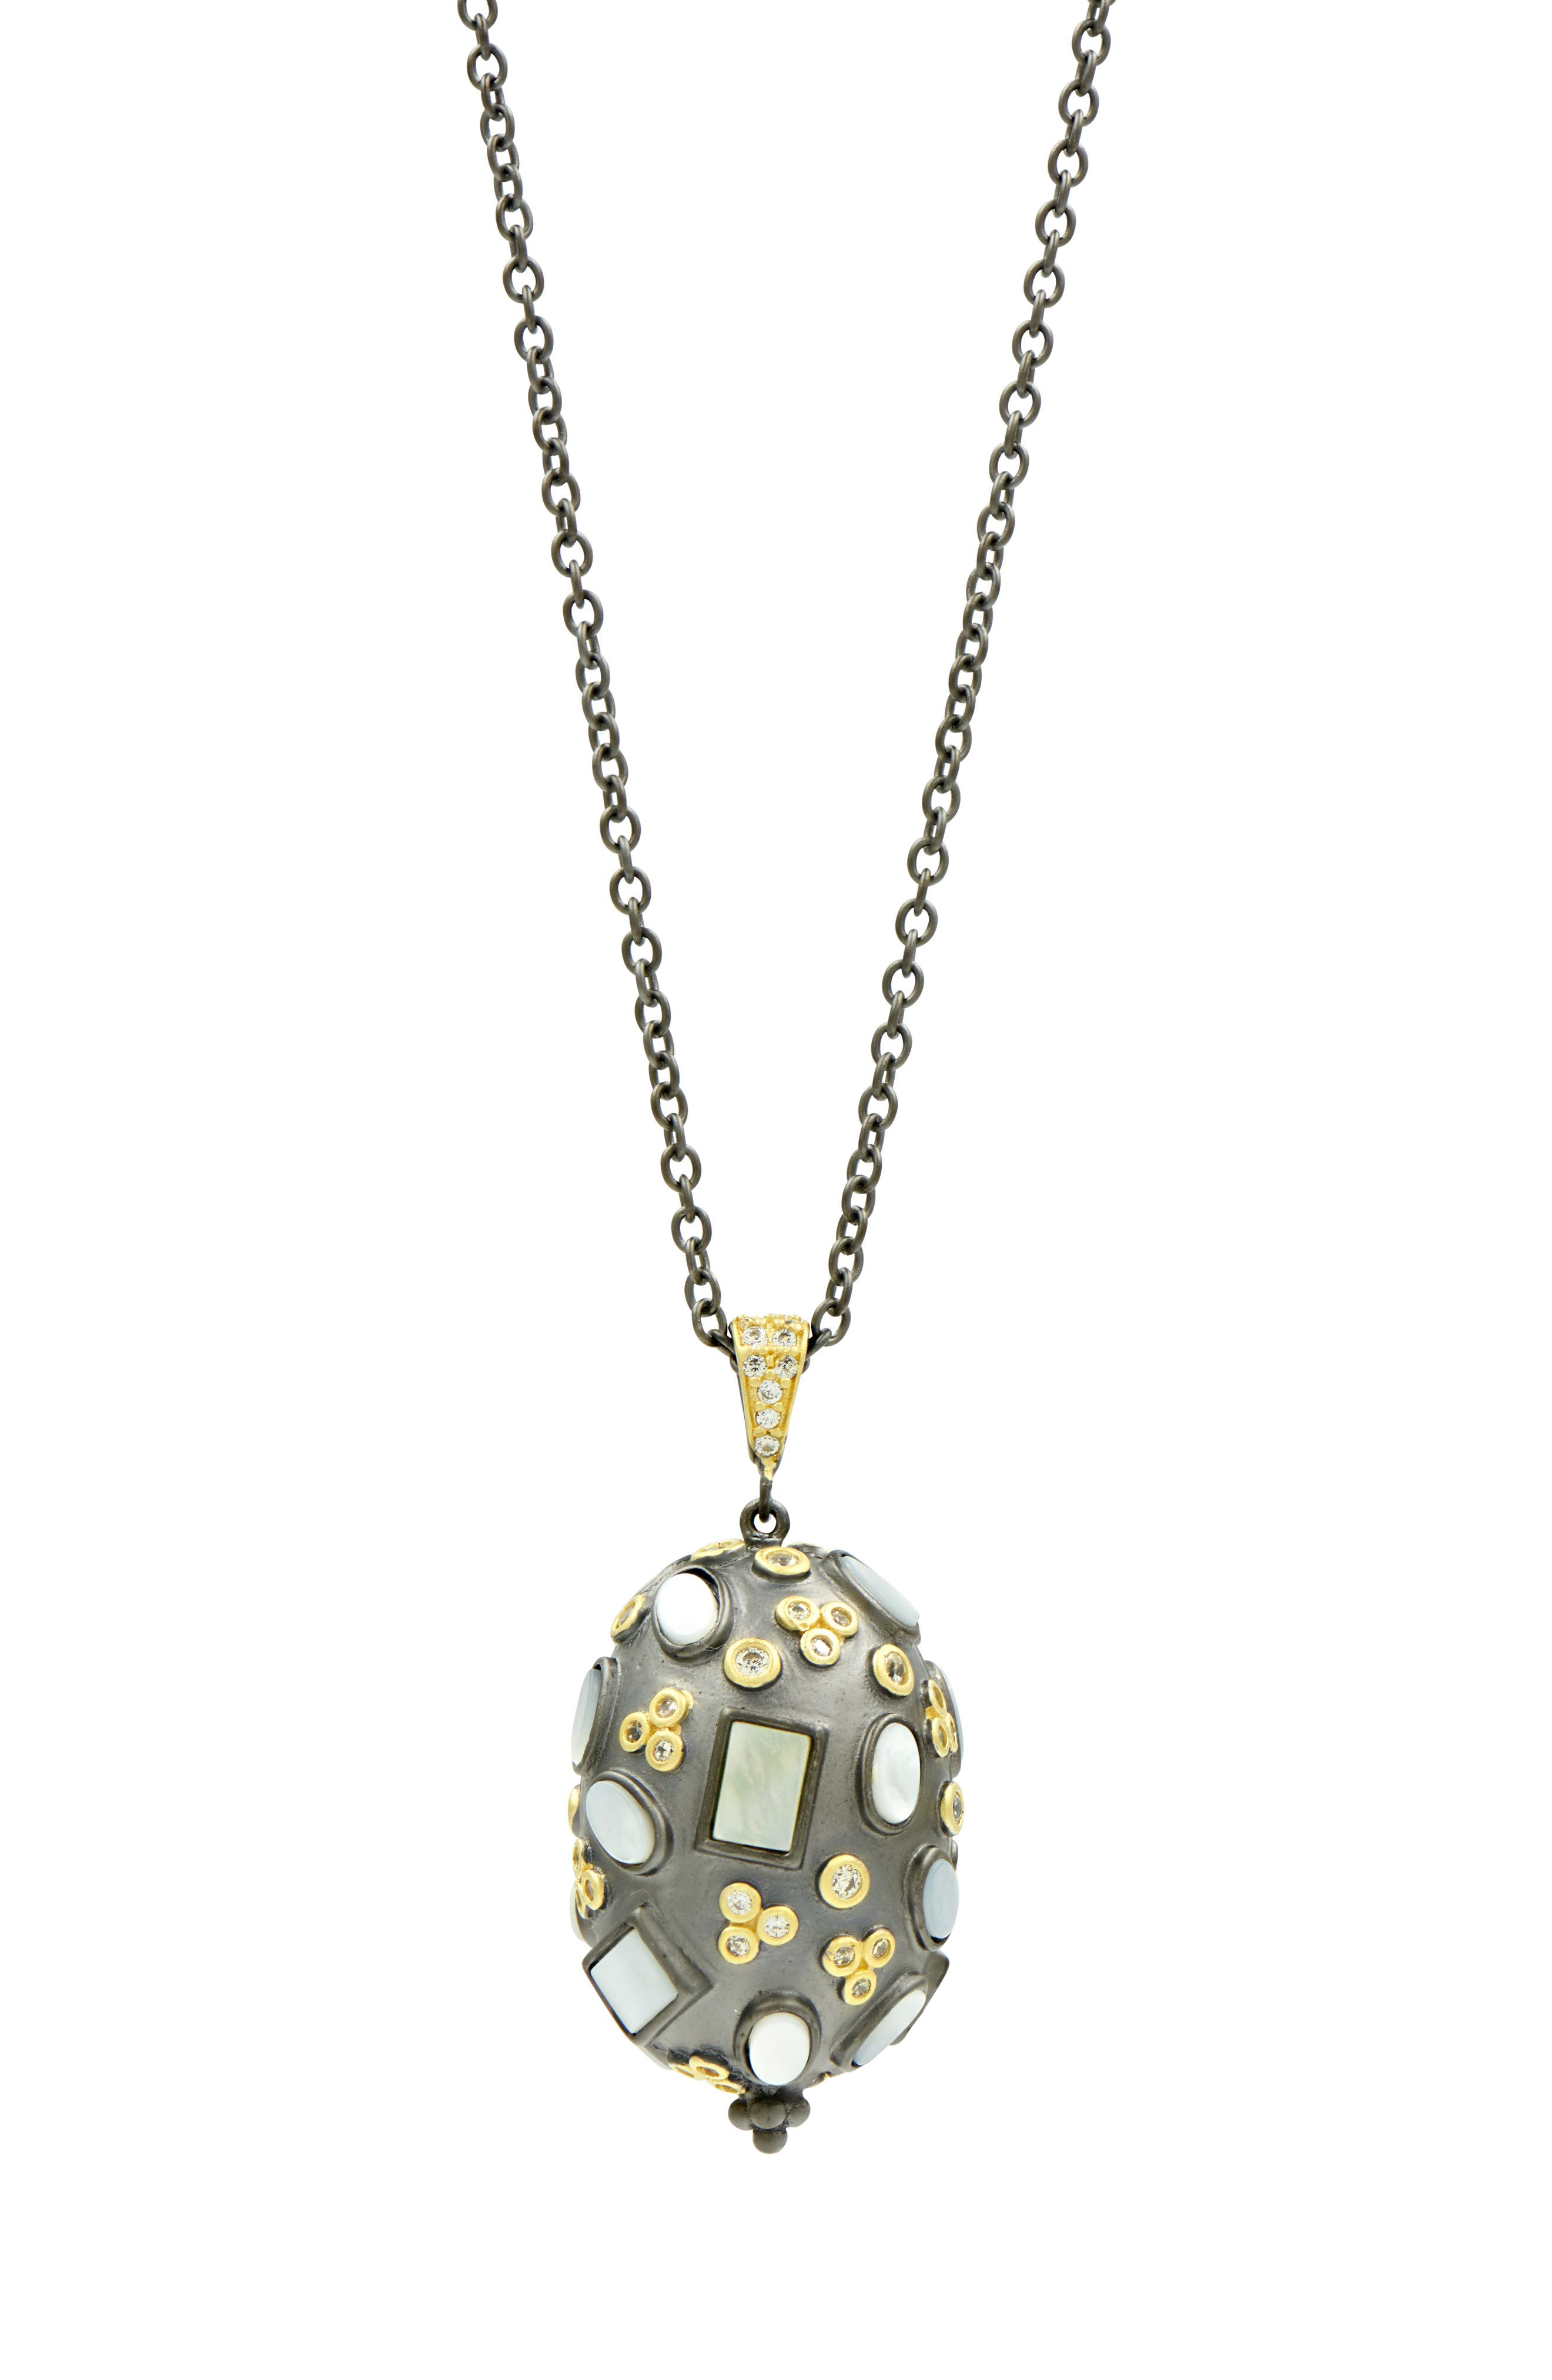 Imperial Multi Stone Pendant Necklace,                             Main thumbnail 1, color,                             GOLD/ BLACK